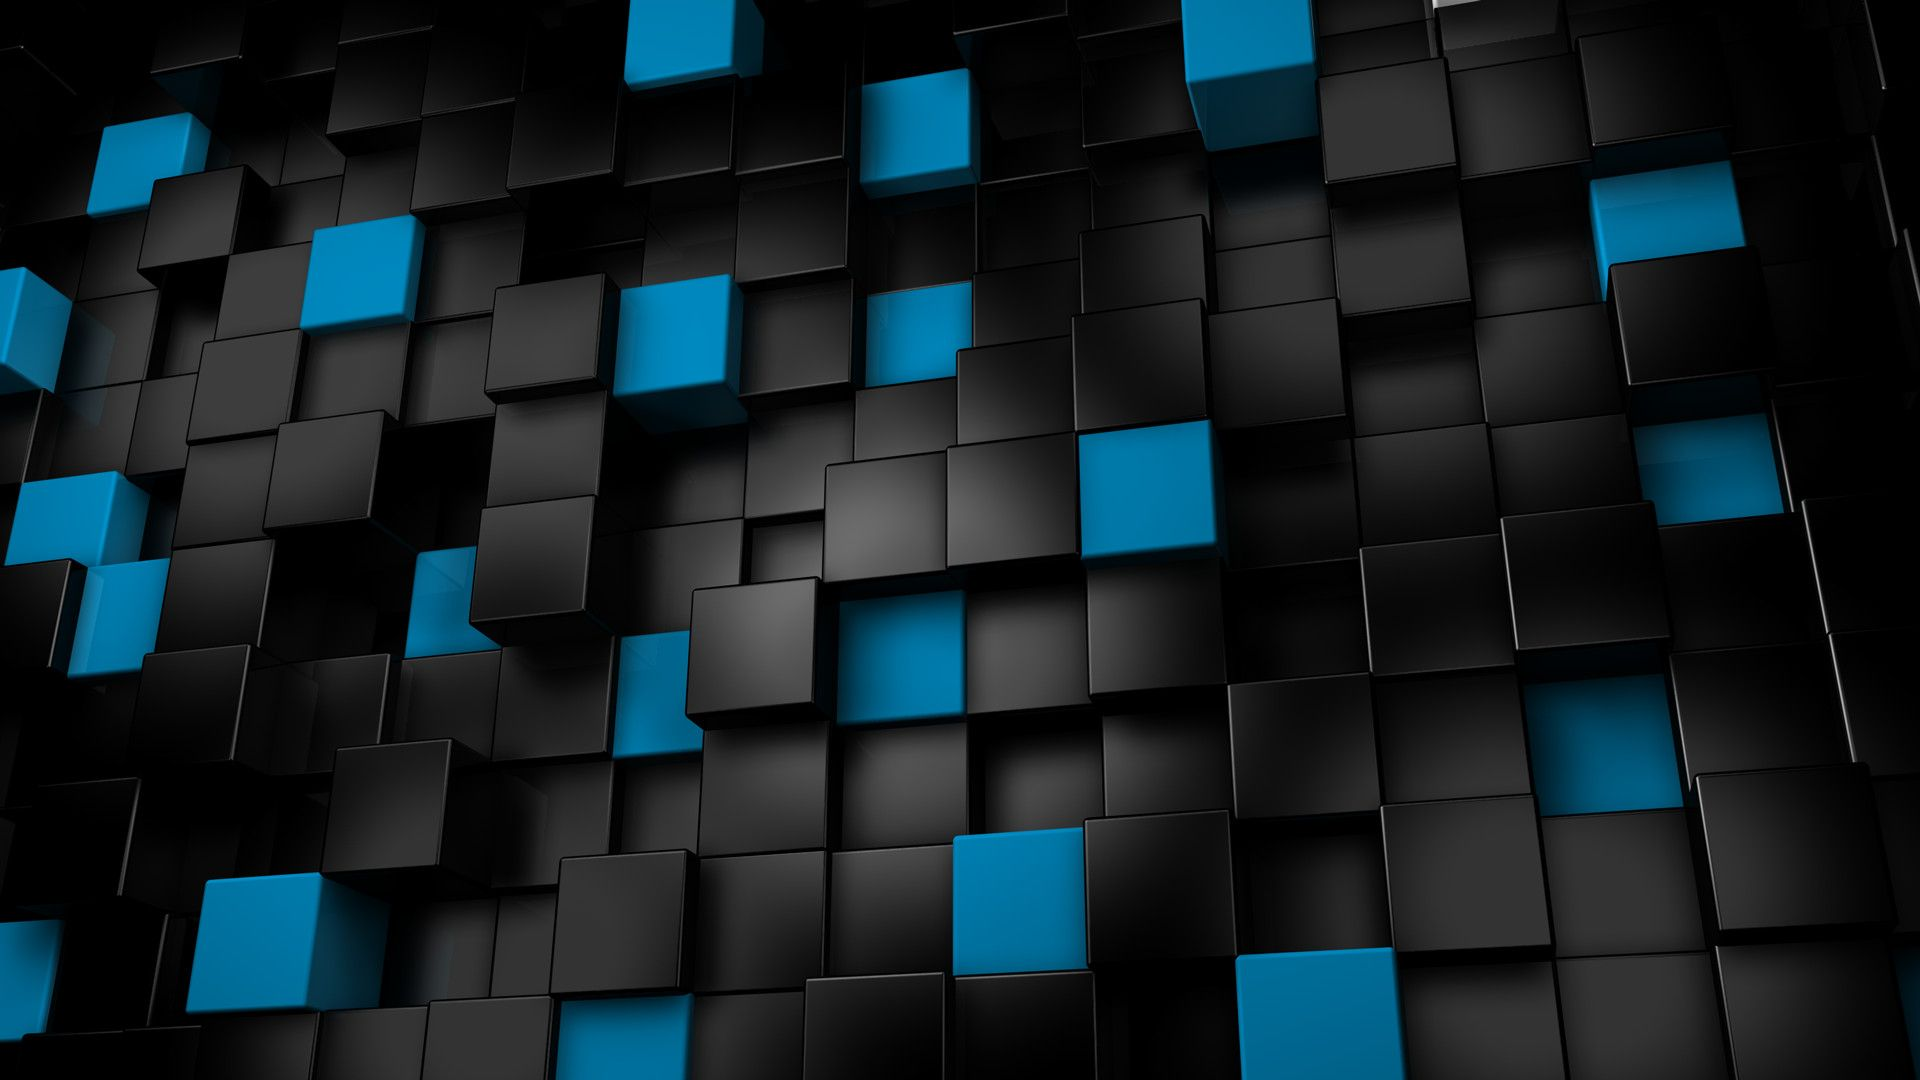 HD 3D Abstract Wallpapers 1080p 53 Wallpapers – Adorable Wallpapers